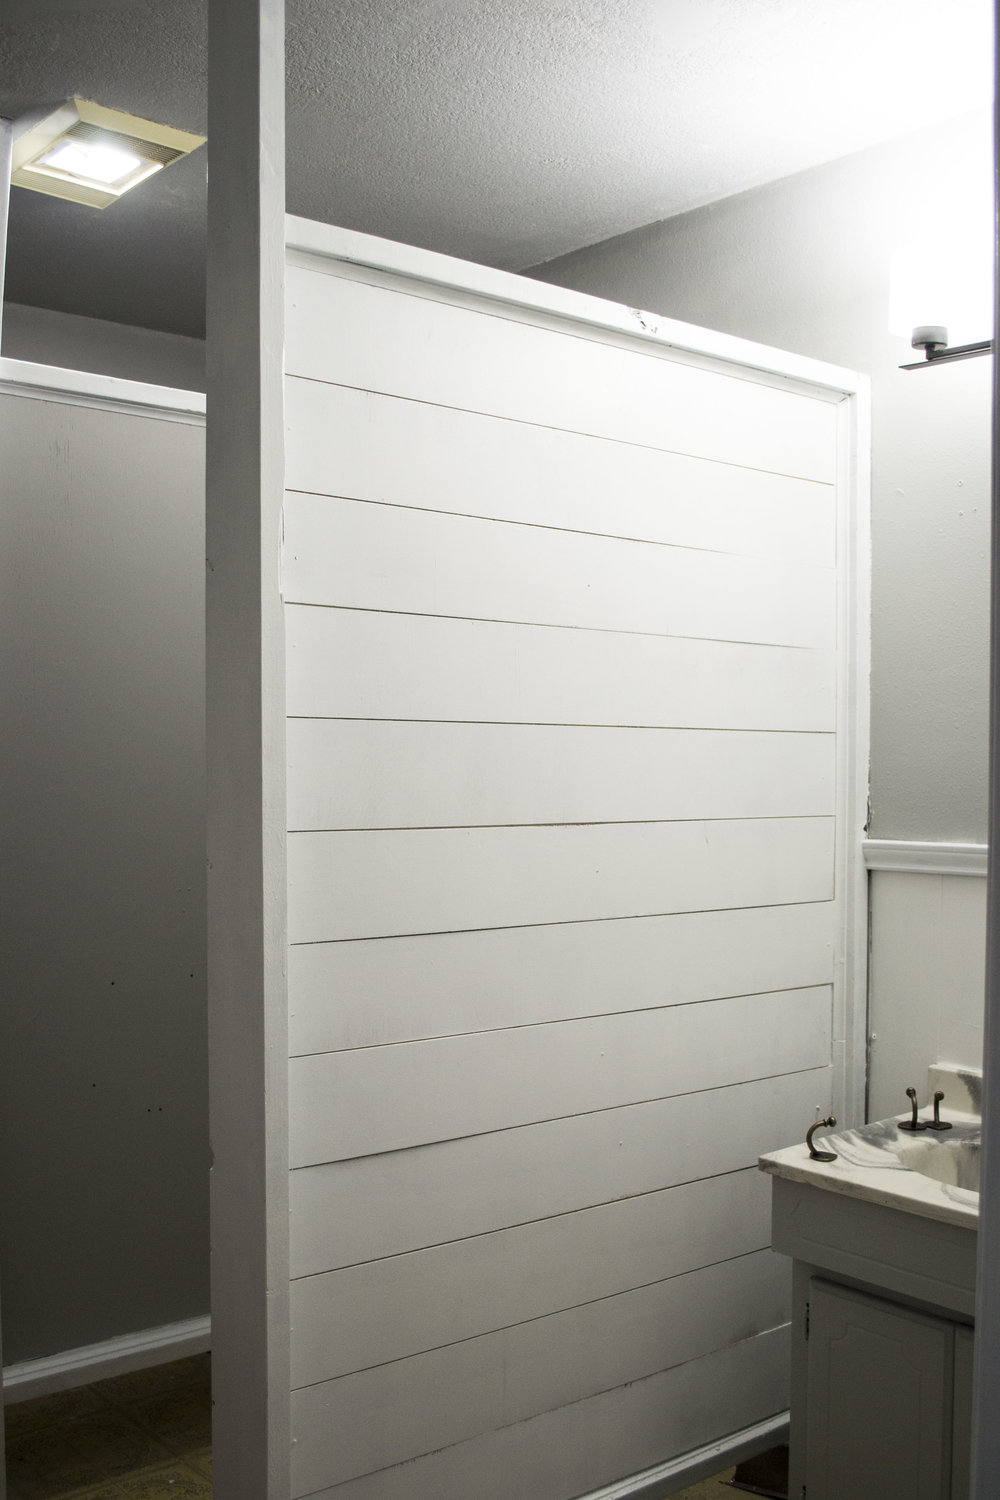 This is the shiplap panel you see right as you enter the bathroom. Once we finished the rest of the bathroom, the whole space appeared more refreshed and polished.